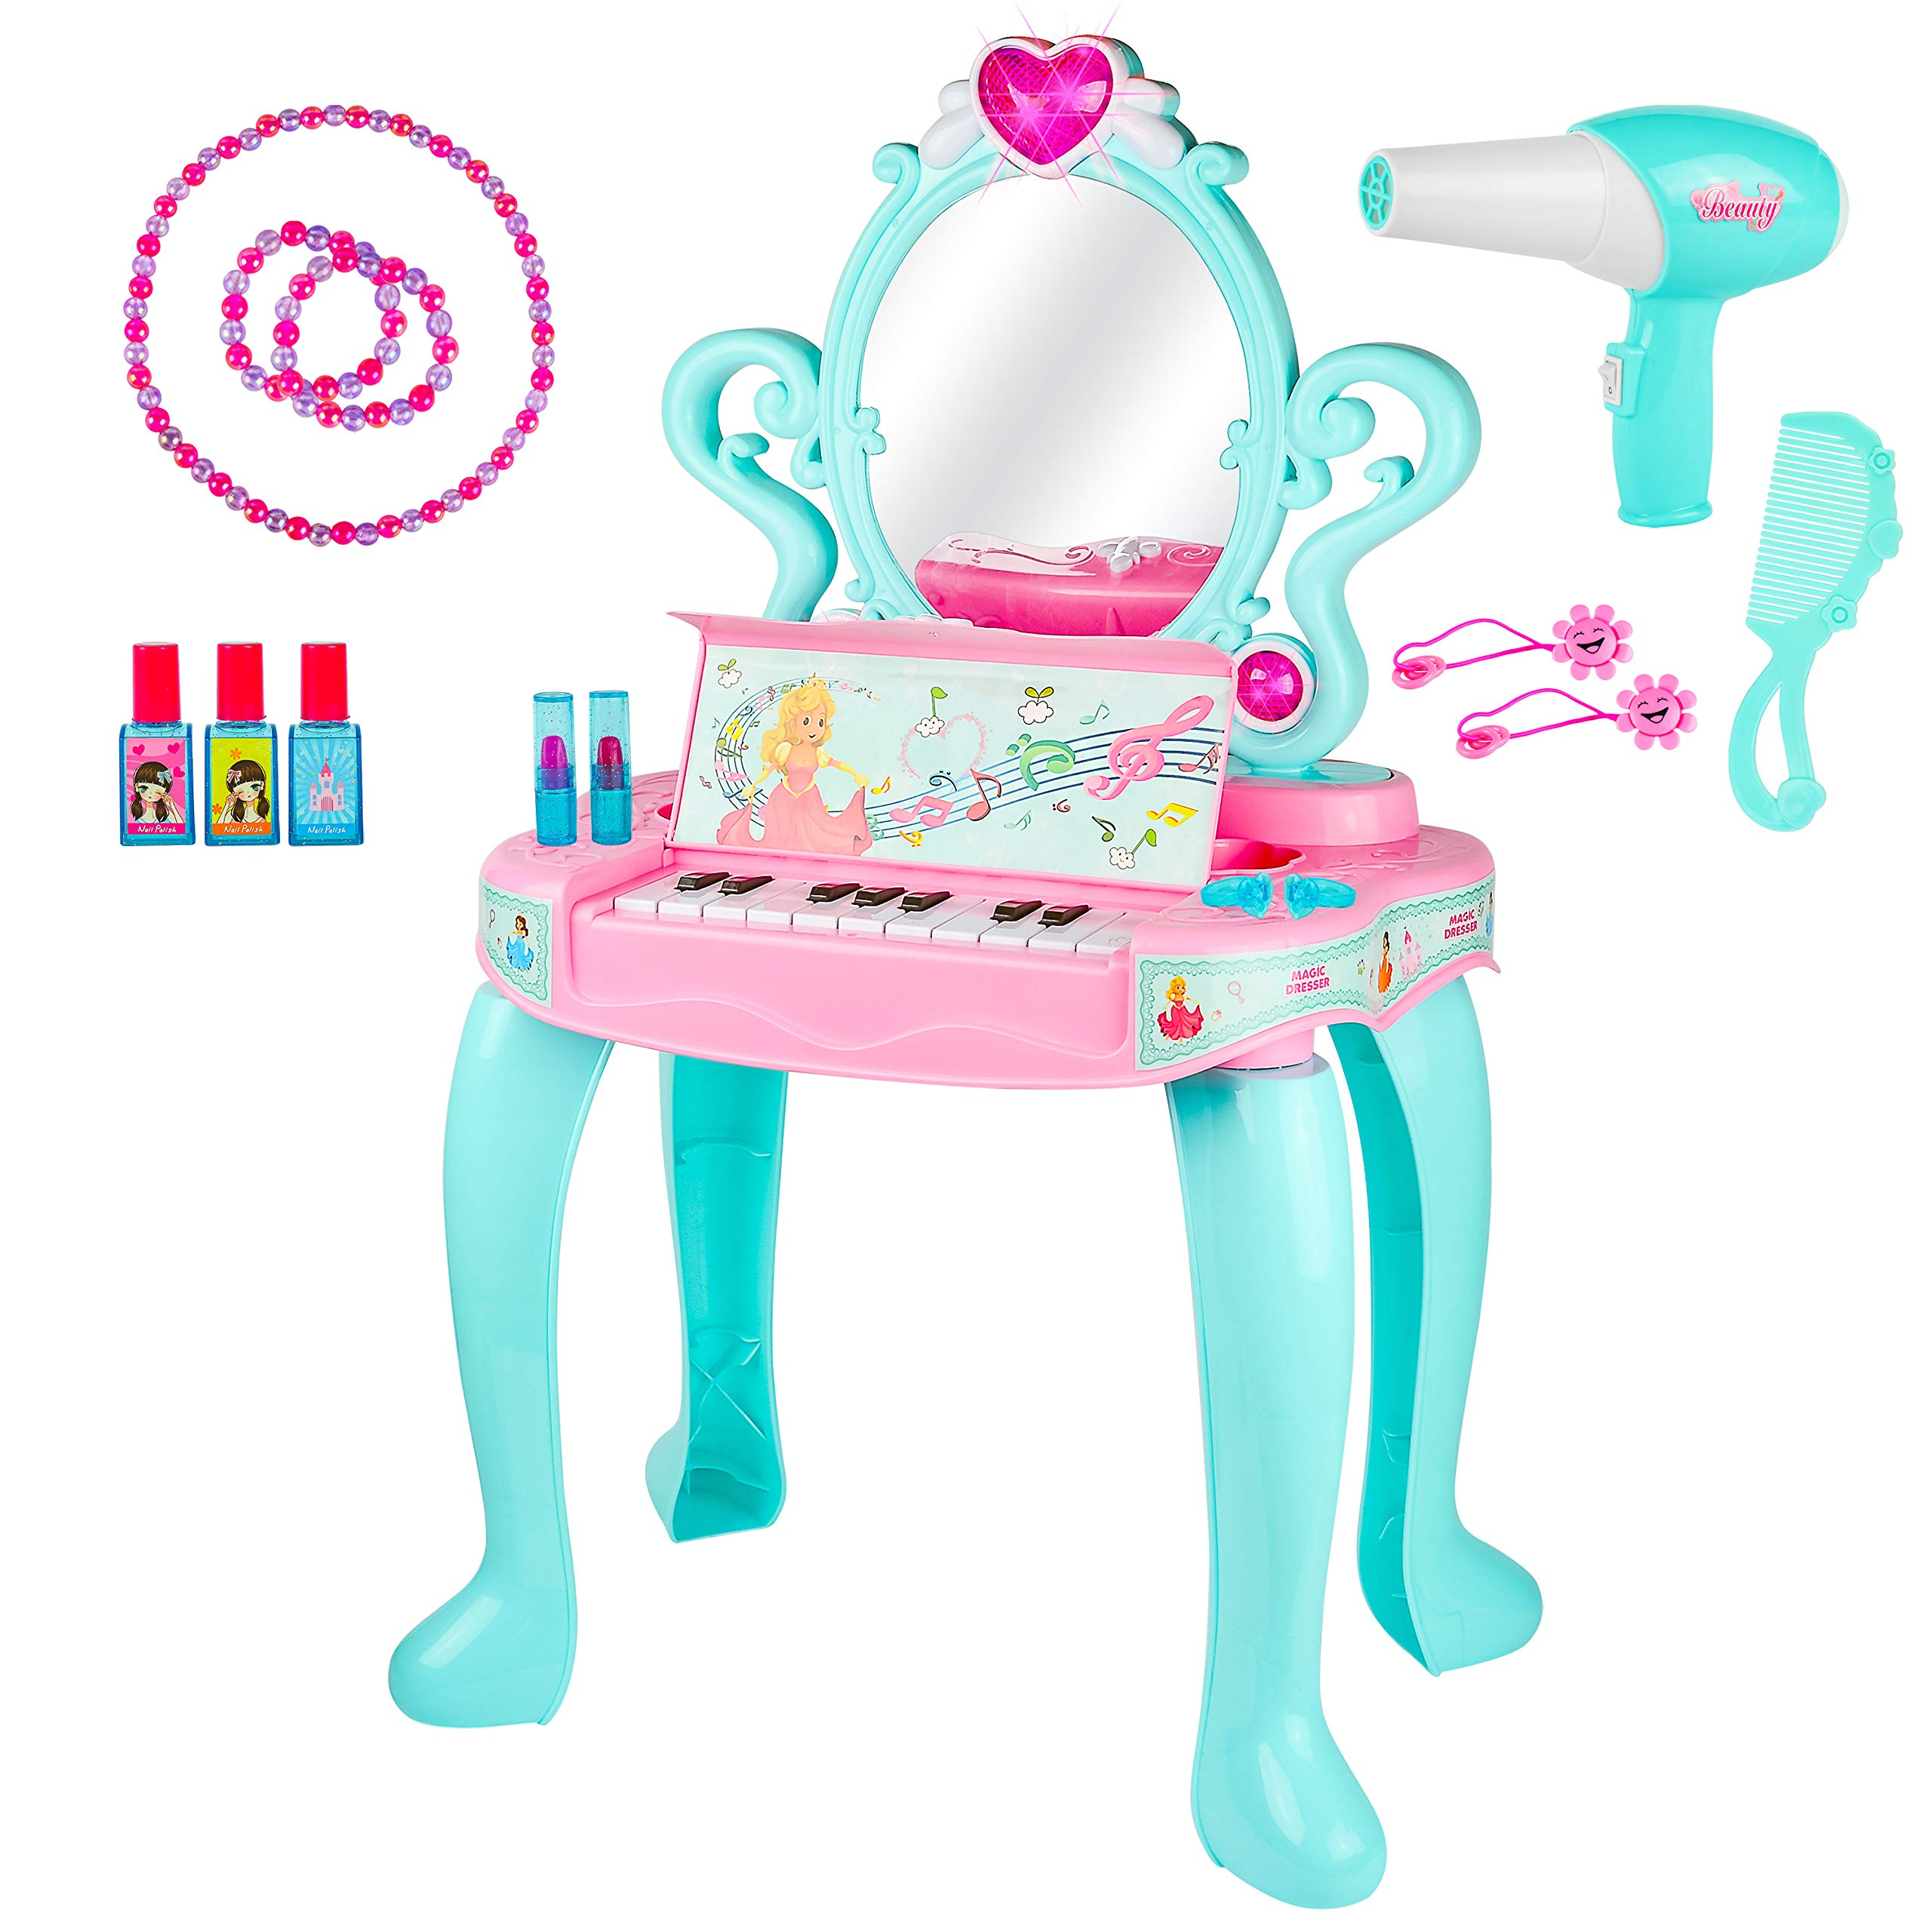 Kiddie Play Pretend Play Kids Vanity Table and Beauty Play Set with Piano and Fashion Makeup Accessories for Girls by Kiddie Play